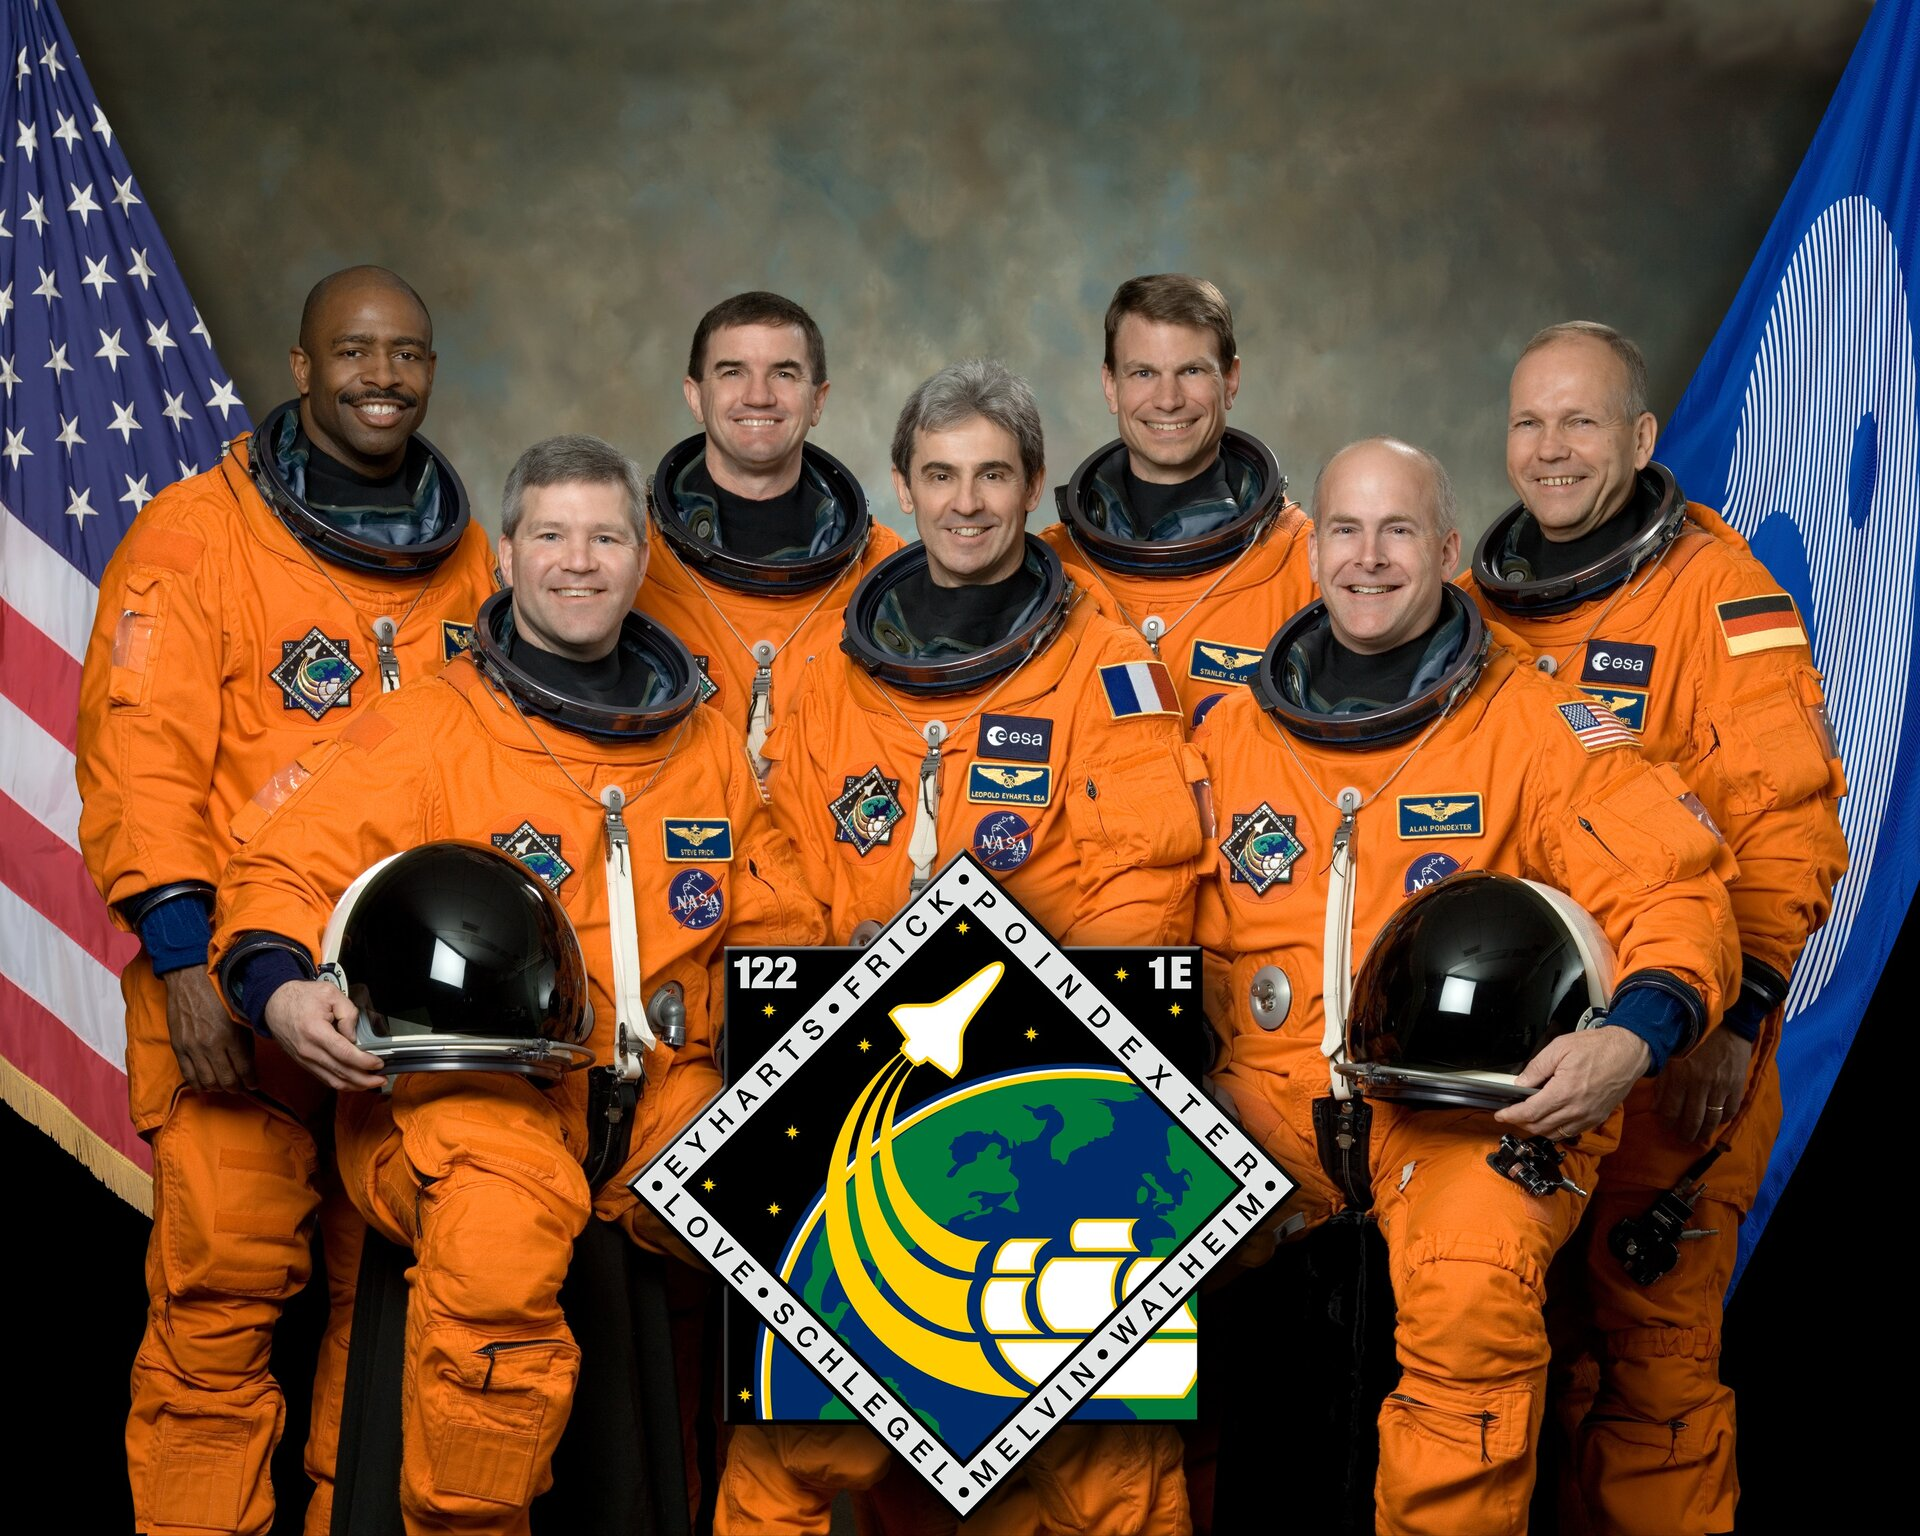 STS-122 crew includes ESA astronauts Schlegel and Eyharts